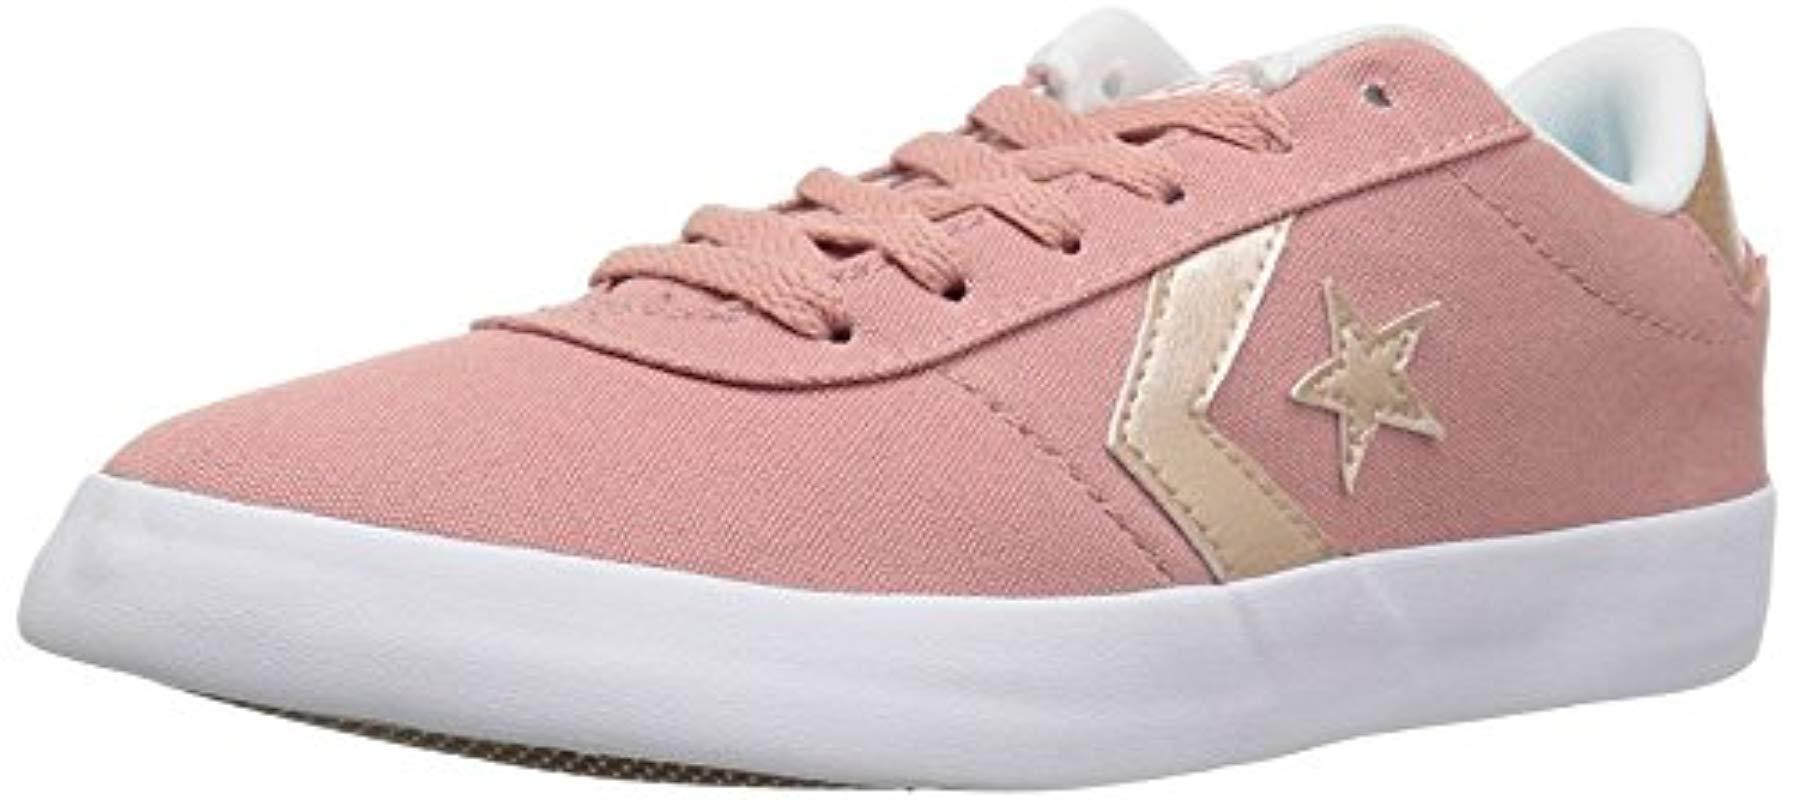 7a364188a5d9d8 Lyst - Converse Point Star Low Top Sneaker in Pink for Men